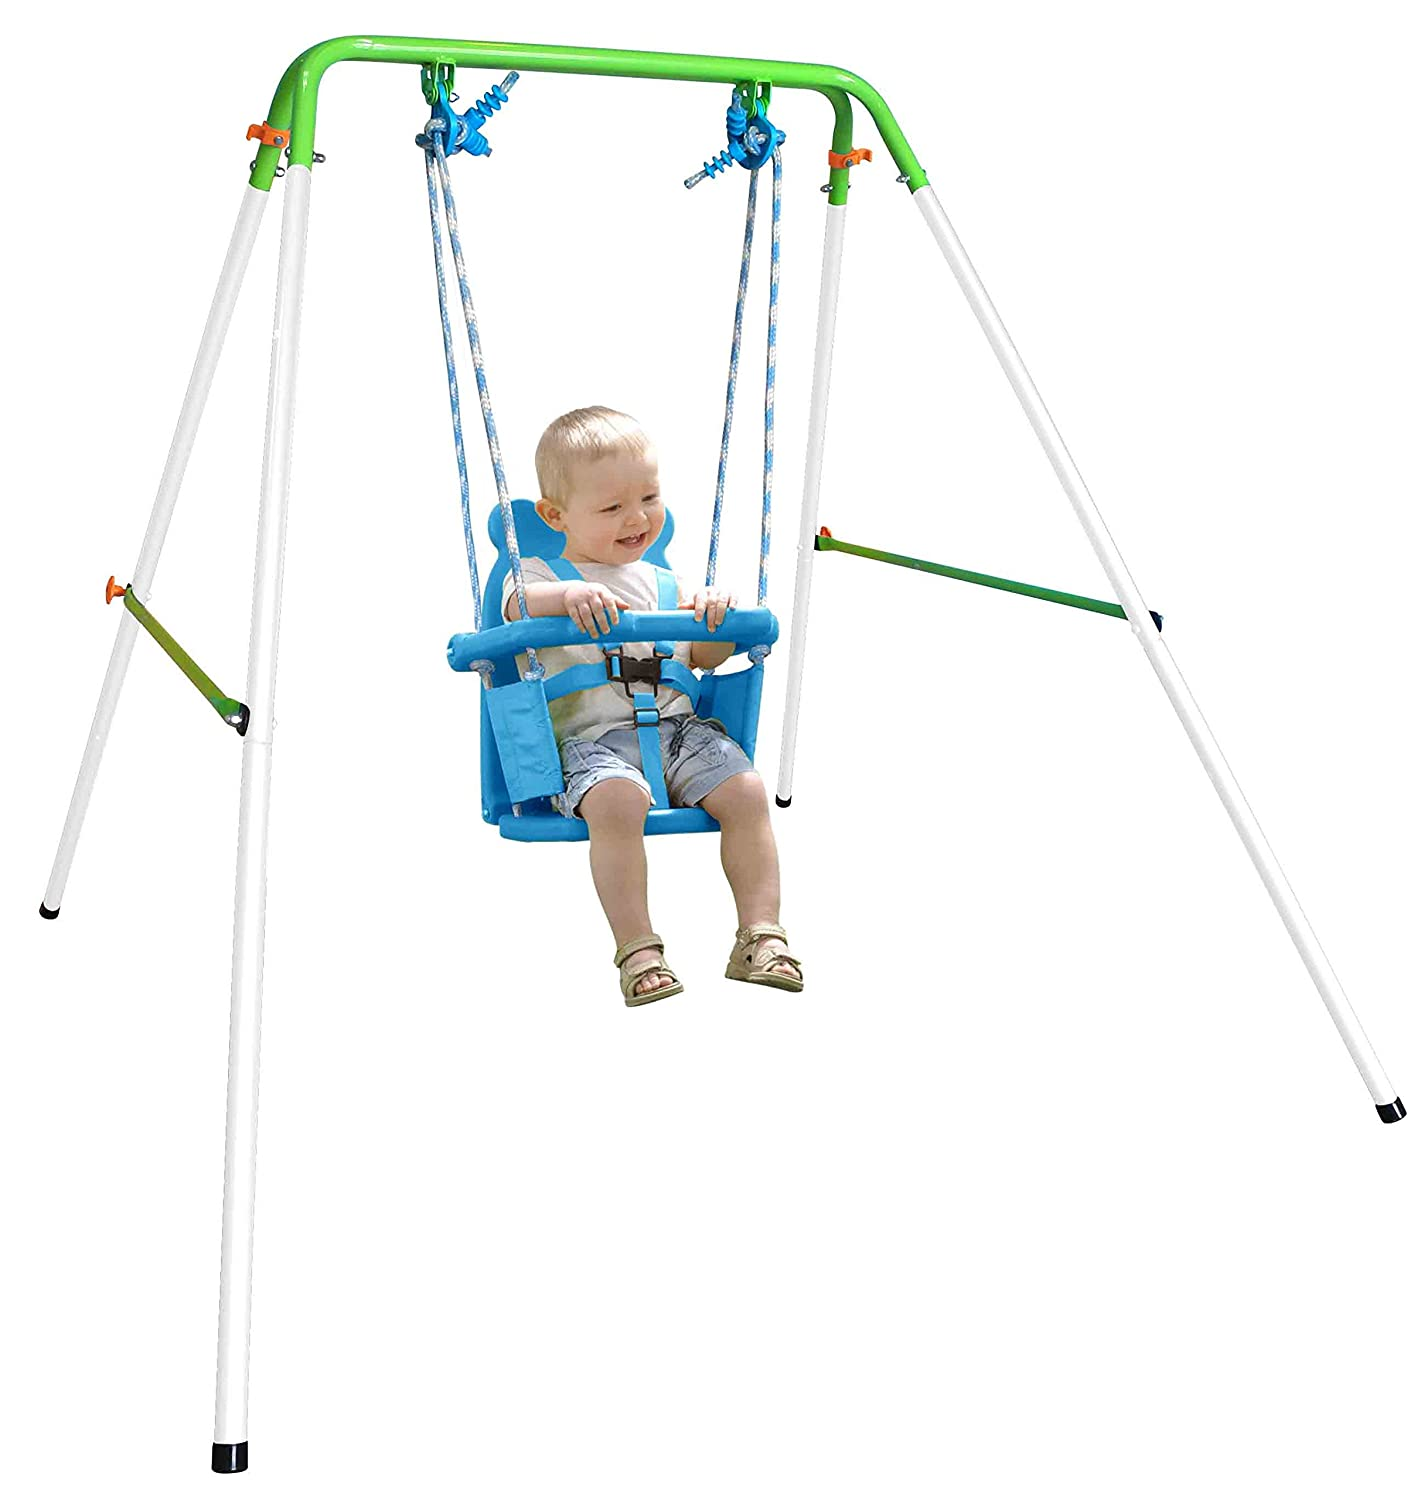 Amazon Sportspower My First Toddler Swing Toys & Games